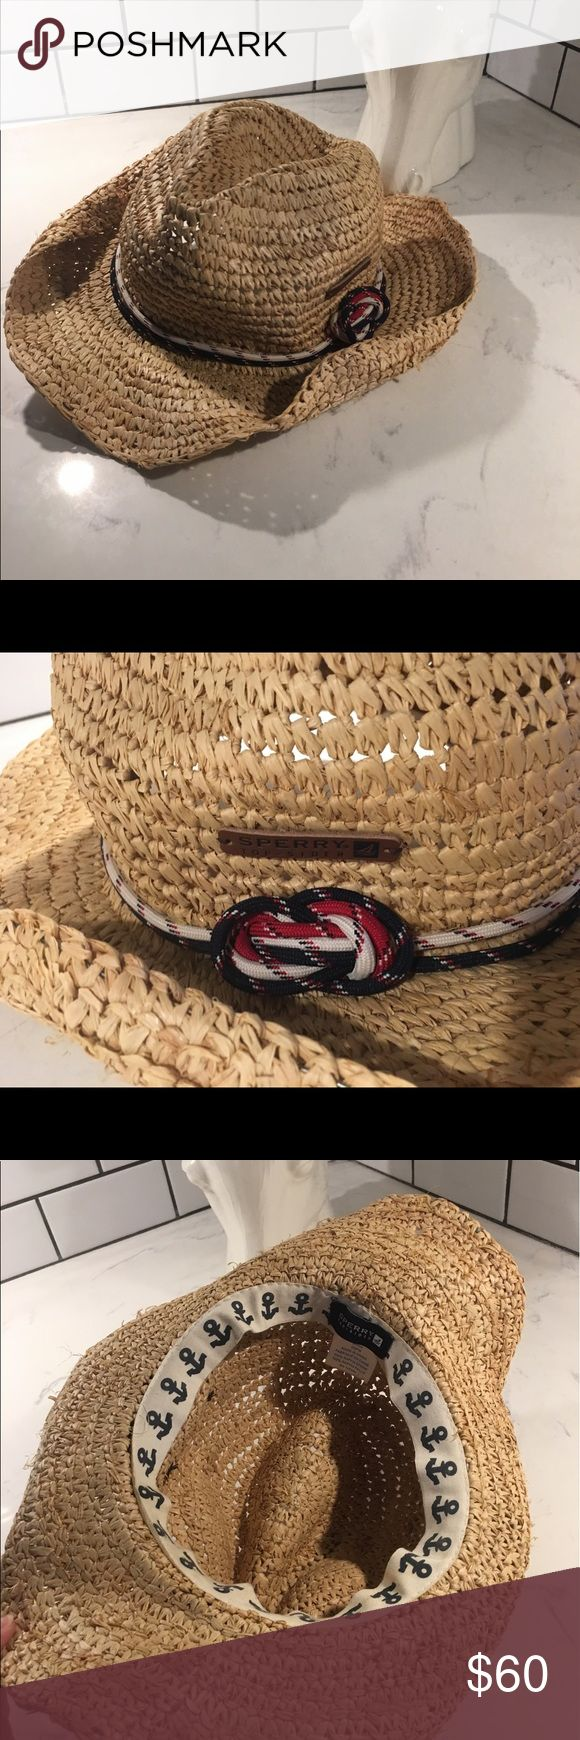 Sperry wicker straw Knot cowboy hat beach Nautical ✨(❁´◡`❁) ωḙℓḉ✺Պḙ (❁´◡`❁)✨      🦋Description:      •Cute Nautical (red, white, blue) rope detail   •Straw    •Cute, slouchy beachy style    ✨      🦋Brand: Sperry       🦋Size: N/A (women's)      🦋Condition: Excellent preowned shape. No holes or stains. Worn once.       (please refer to all photos Don't hesitate to ask ANY and ALL question before Bidding/Buying)      Ask about combined shipping and discounts! Sperry Top-Sider Accessories…